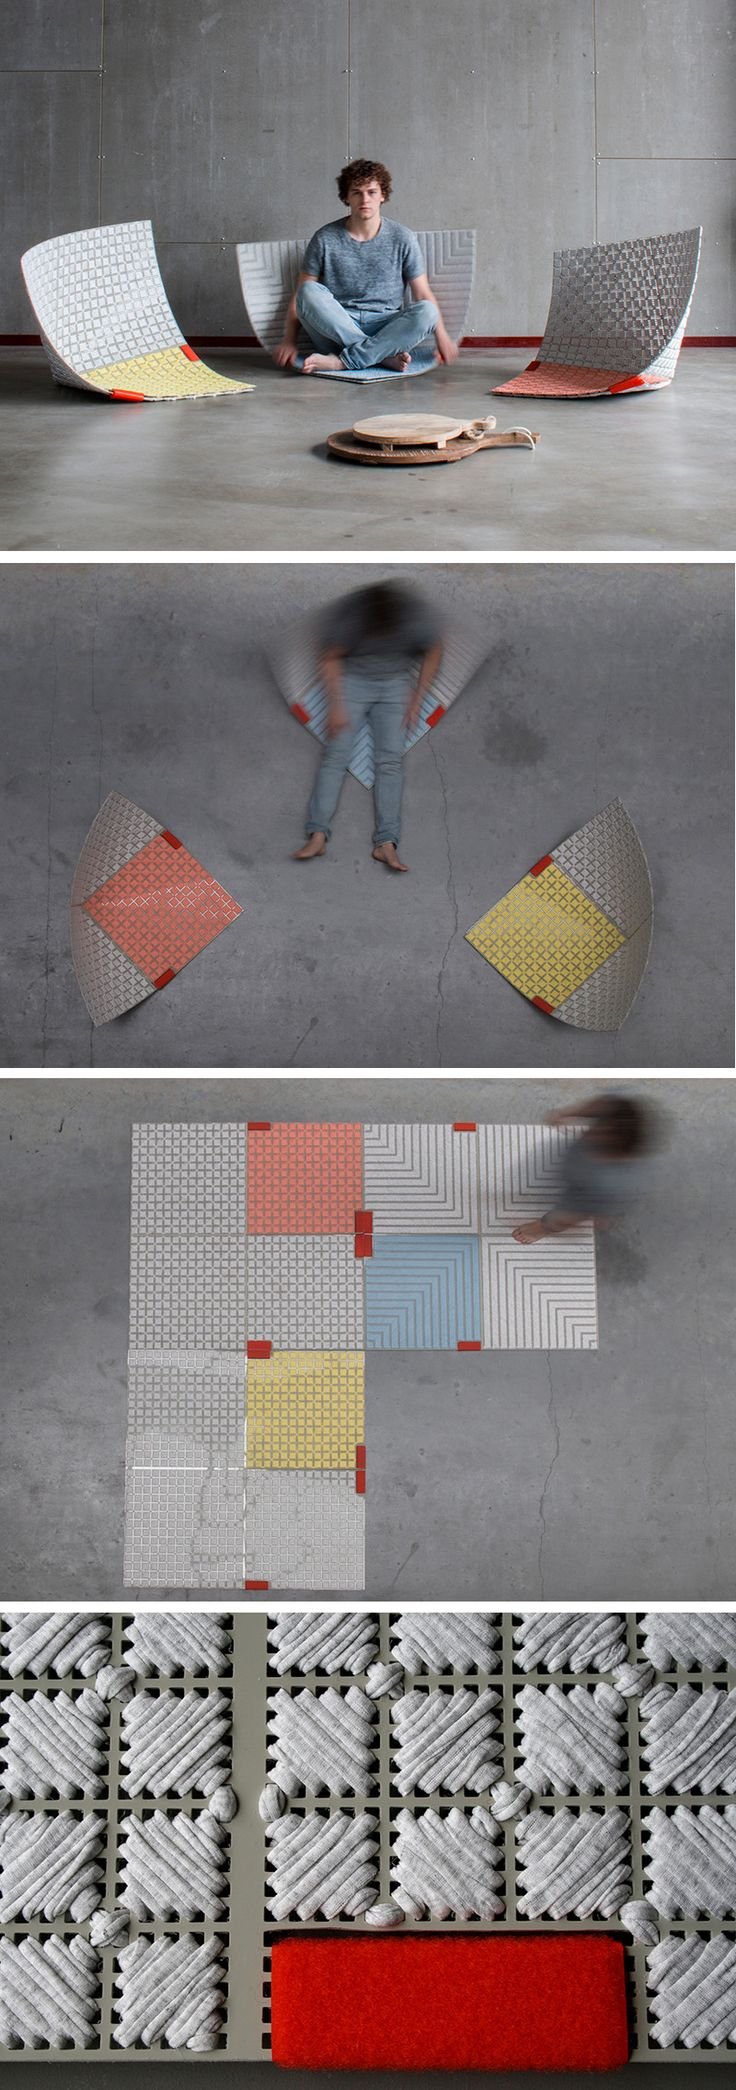 Recent design graduate Sam Linders, has created 'Wobble-up', a carpet that can…